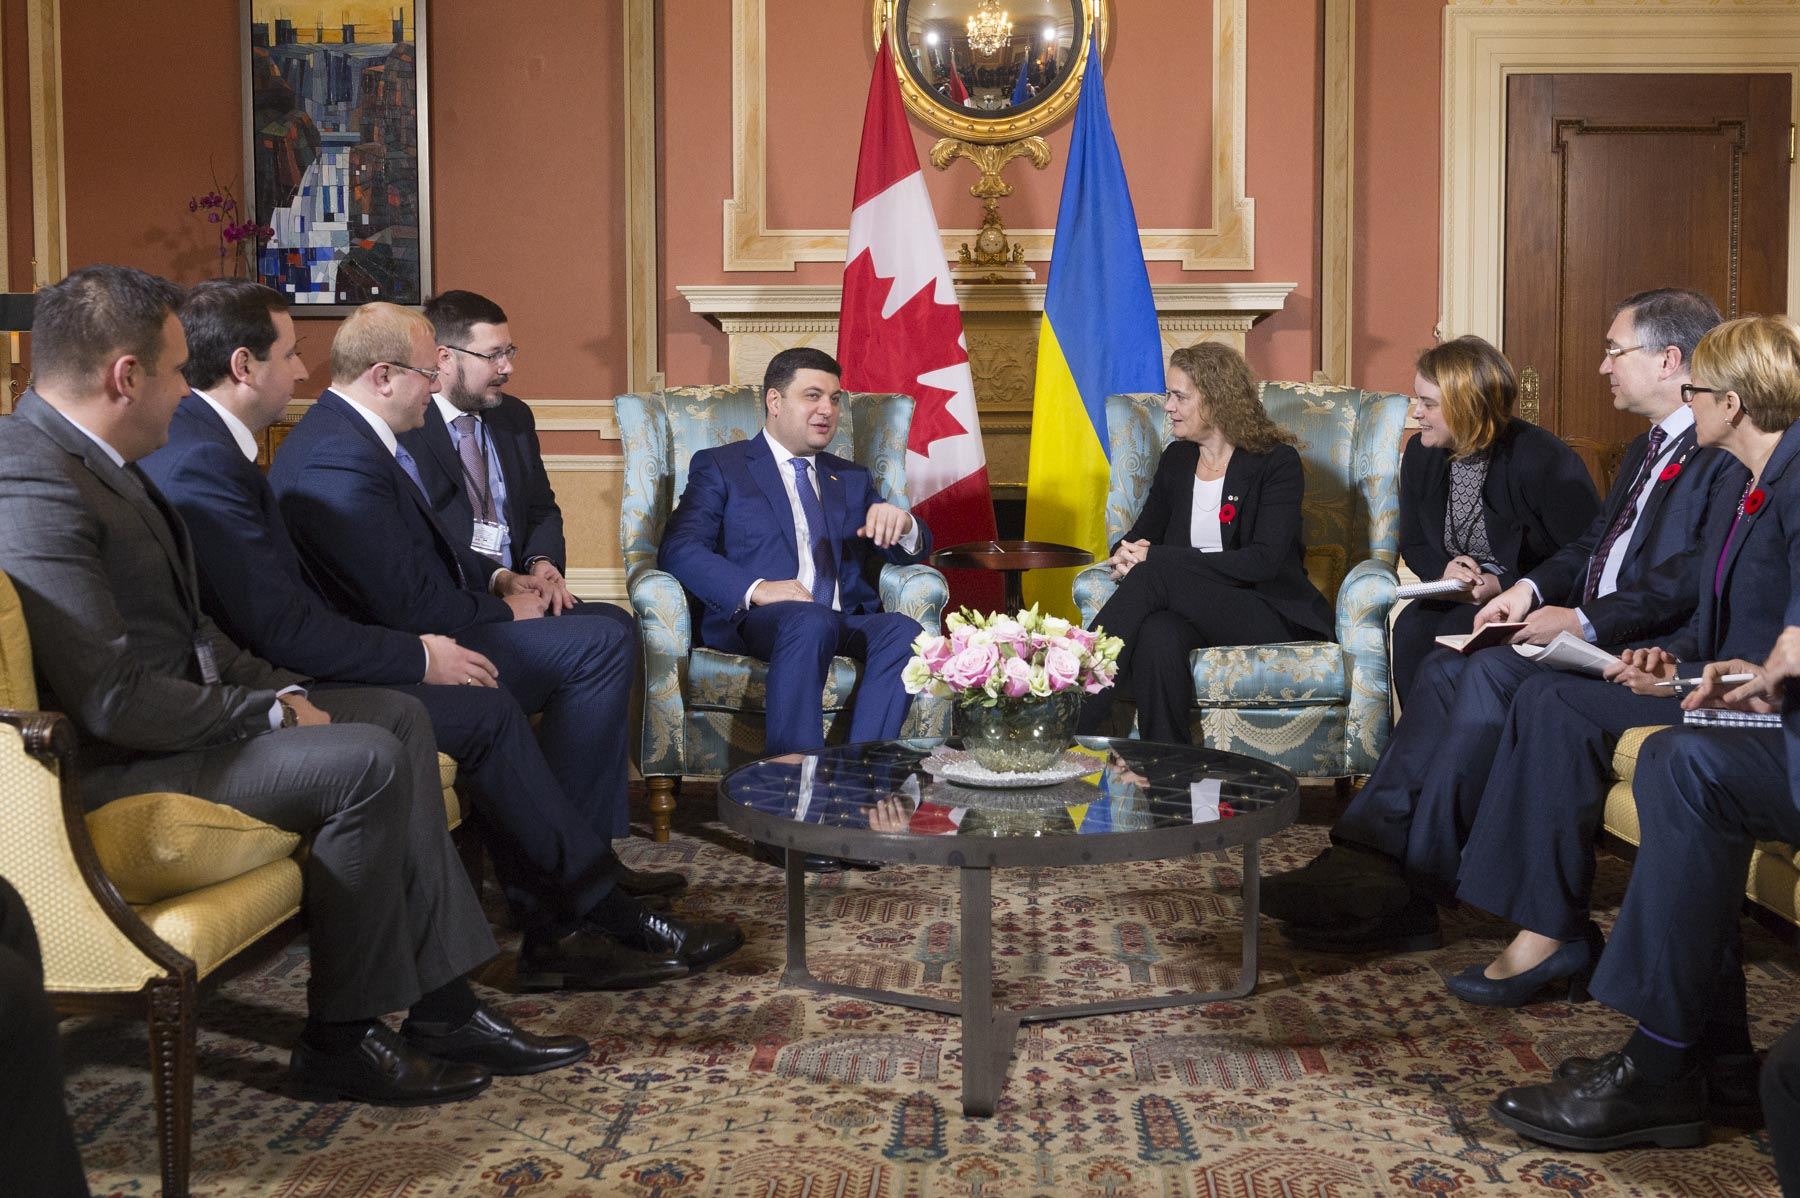 This meeting allowed for discussions on Canada-Ukraine relations.